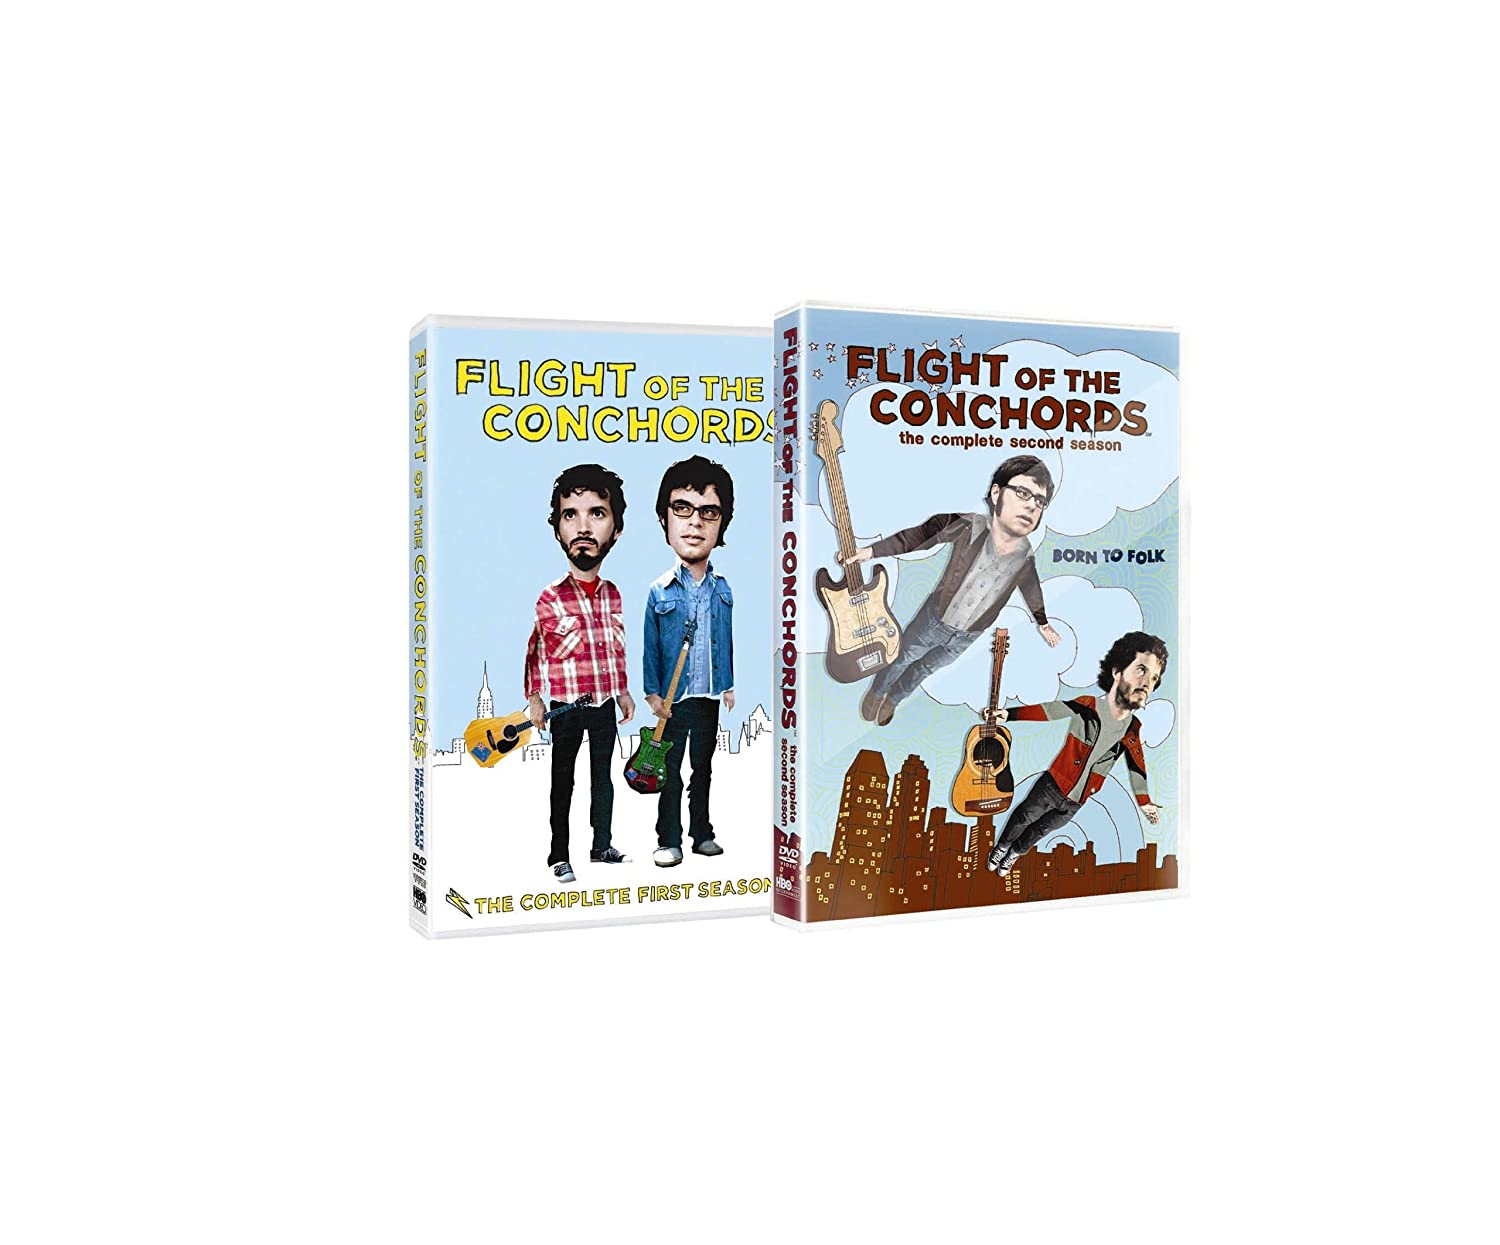 Flight of NEW before selling New mail order the Conchords: The Second and Complete Seasons First